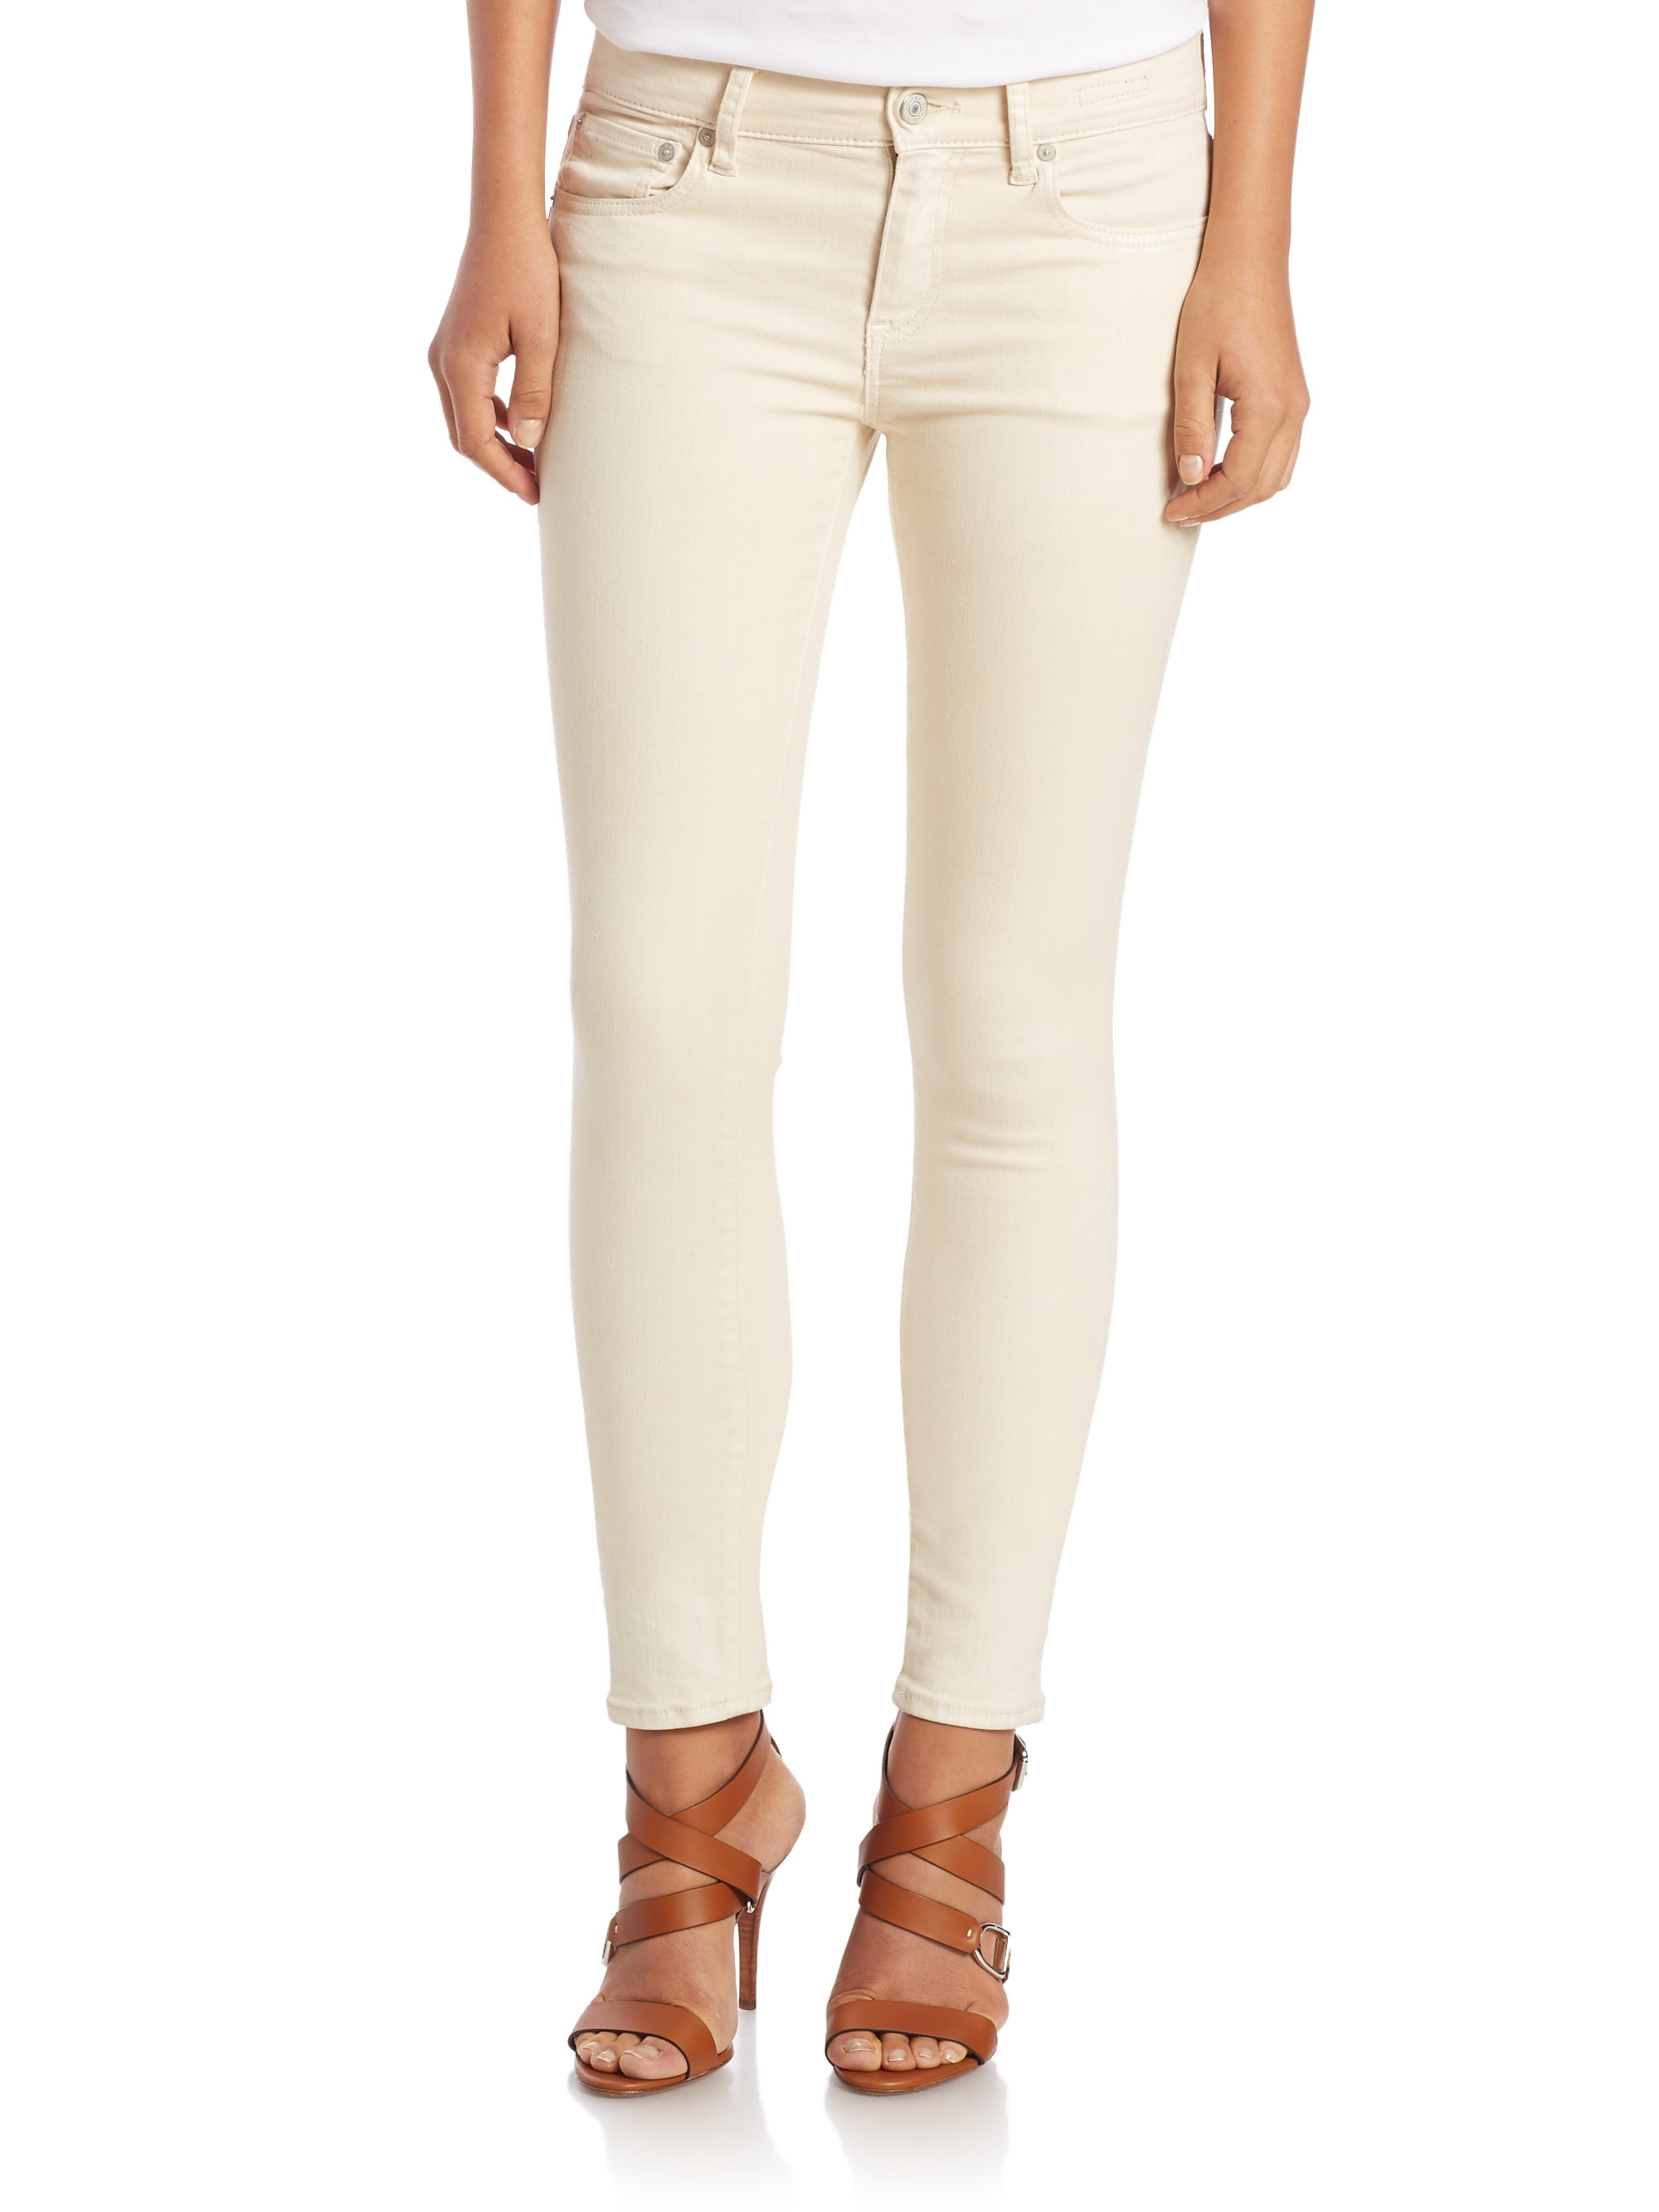 Find great deals on eBay for cream jeans. Shop with confidence. Skip to main content. eBay: Ellen Tracy Womens Capri Jeans sz14 Denim Cream Ivory Skinny New. Brand New · Ellen Tracy · $ or Best Offer +$ shipping. Old Navy Cream Jeans Size Pre-Owned. $ Time left .